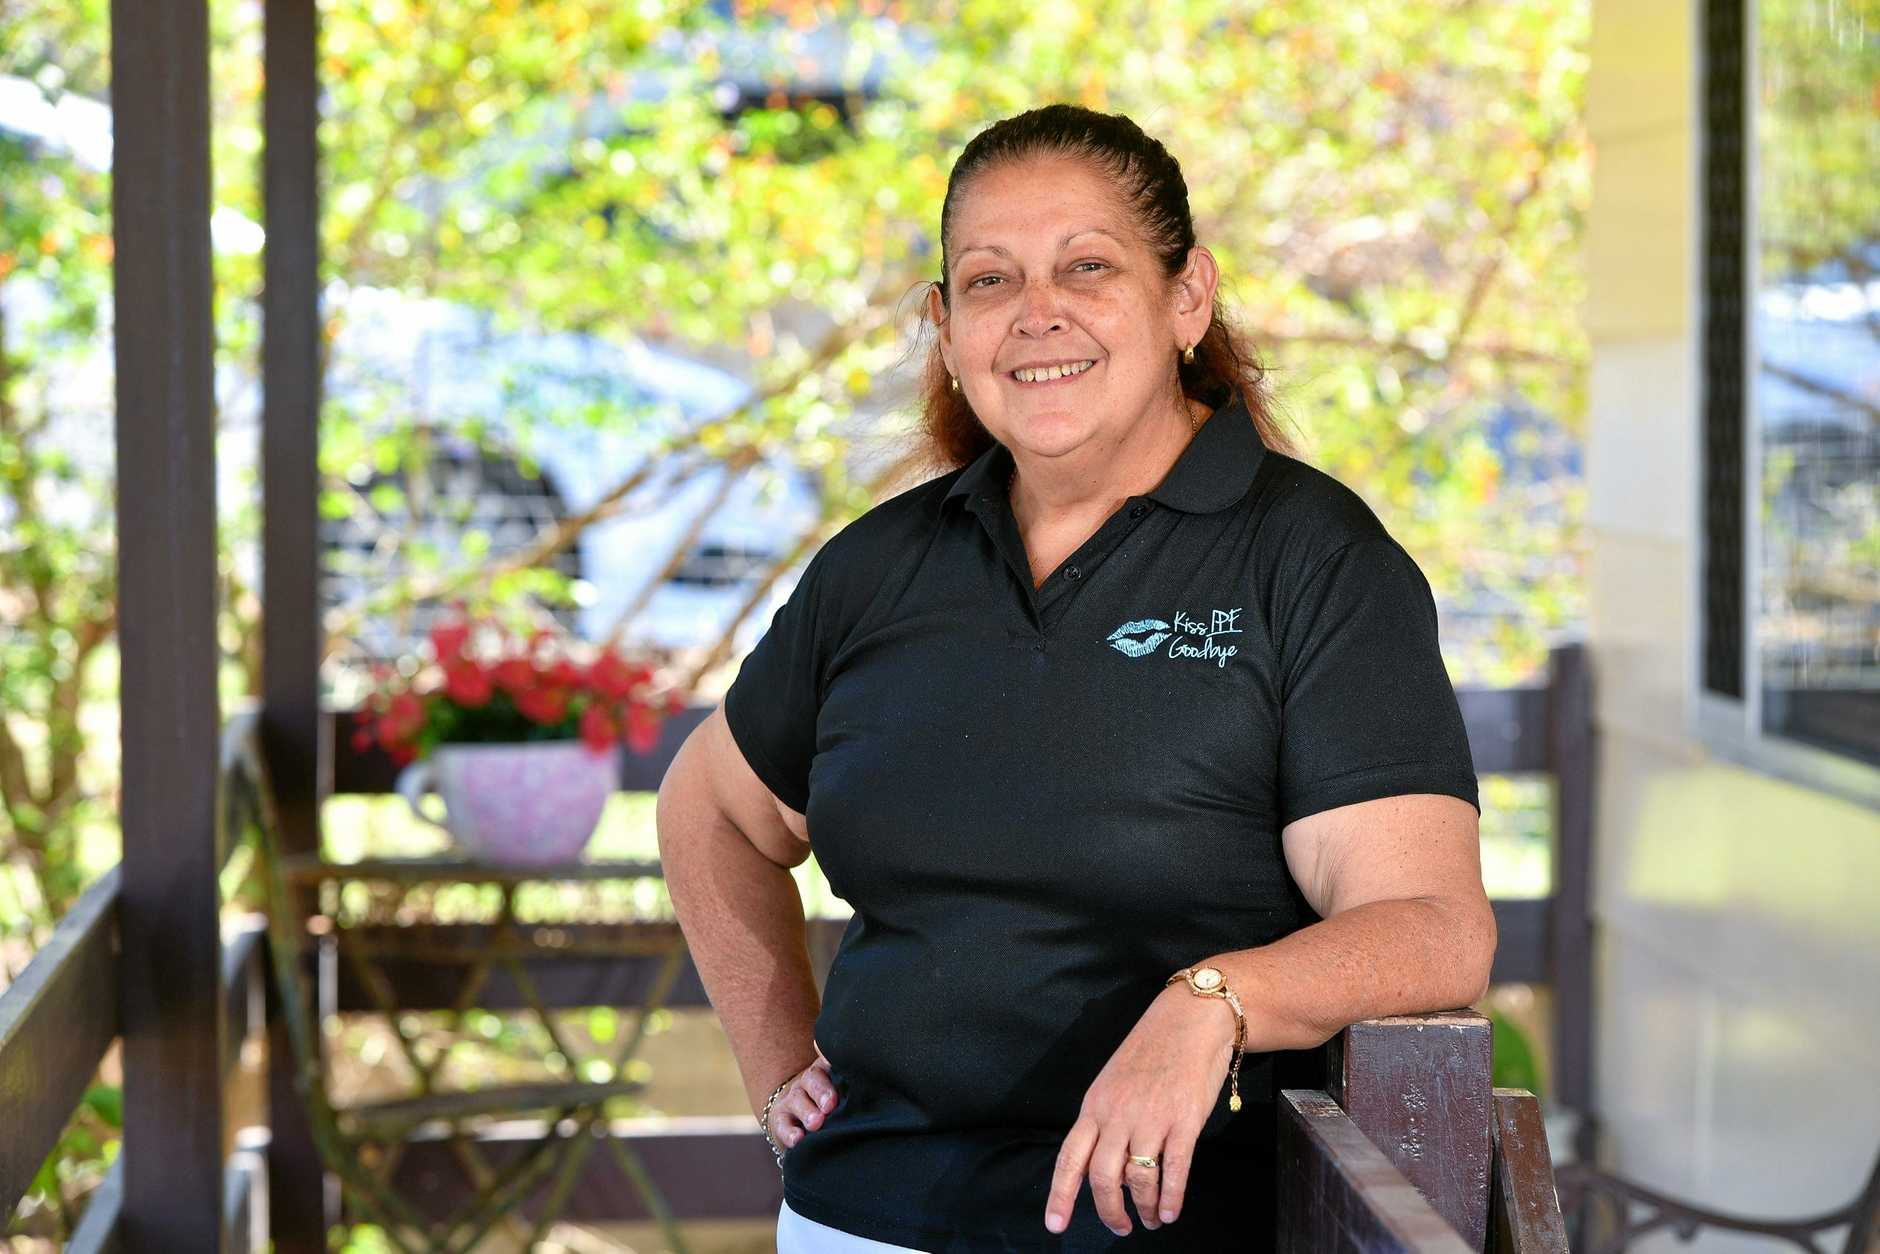 GRATEFUL: Tracey Slatter is a lung recipient who is soon going to visit Sydney to meet her donor family.